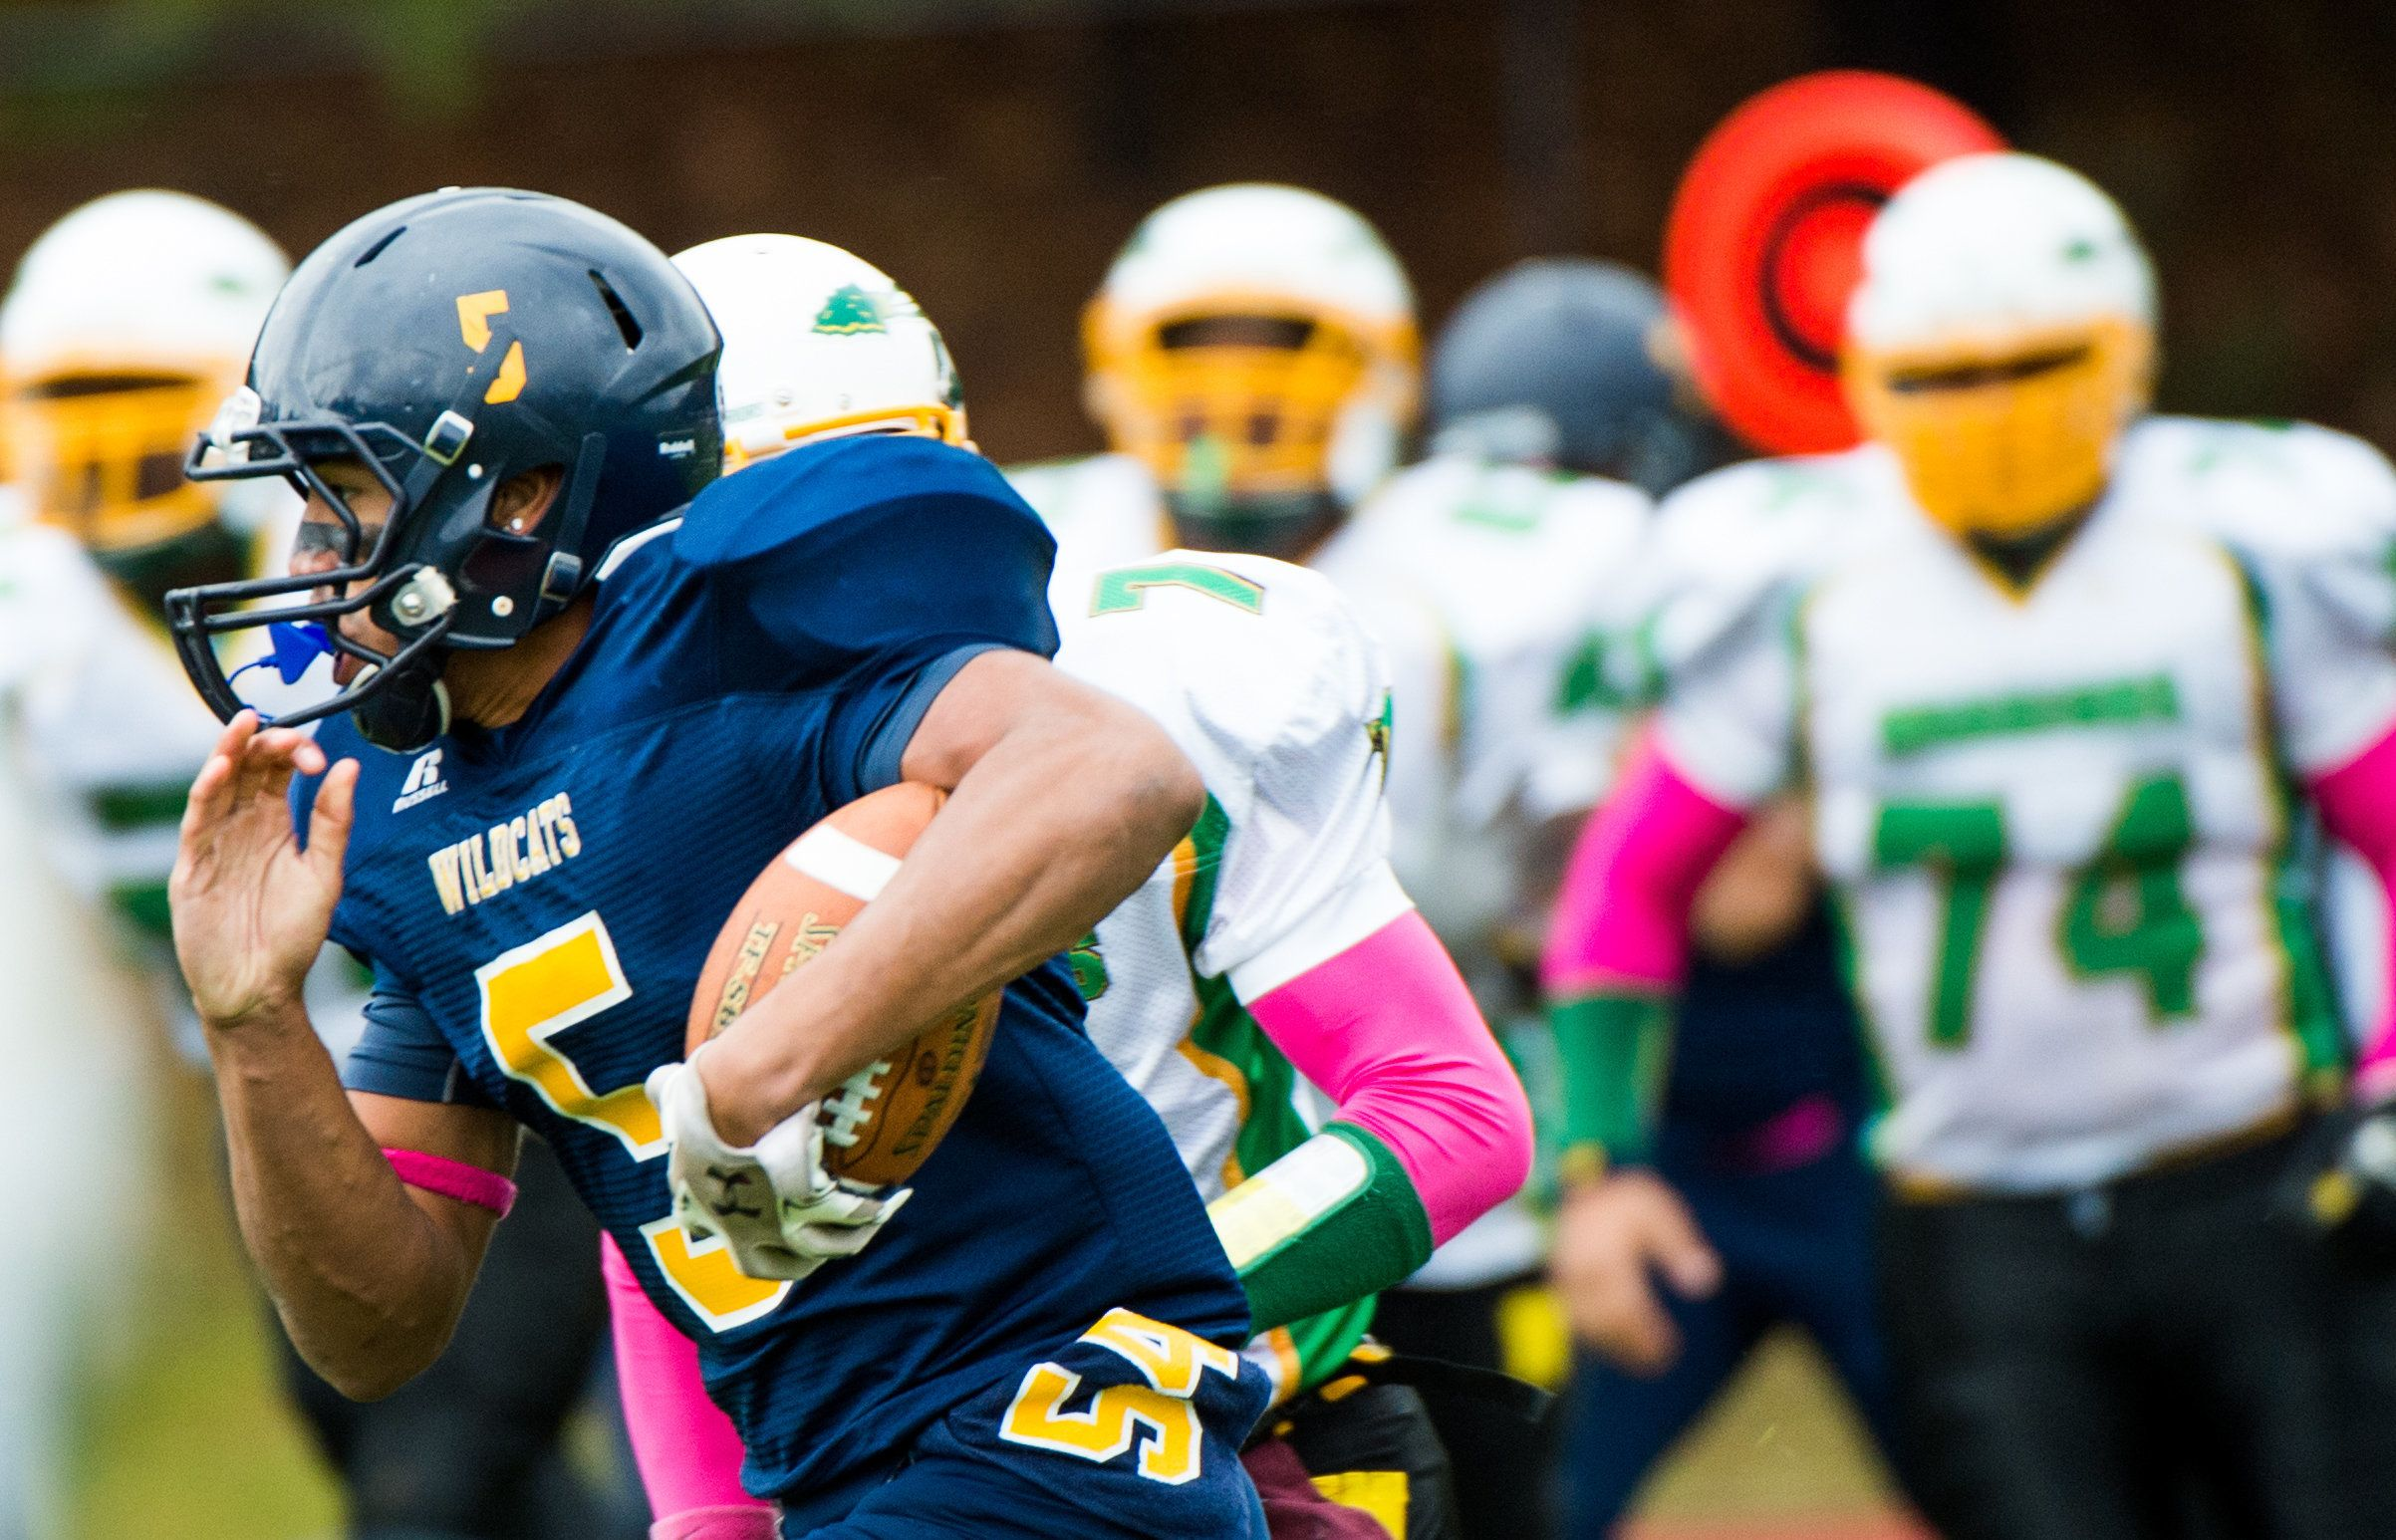 WADING RIVER, NY - OCTOBER 11: The Shoreham Wading River High School Football player Isreal Squires (5) runs against Wyandanch in their first game since their teammate Tom Cutinella died on the field the week before. (Photo by Andrew Theodorakis/Getty Images)